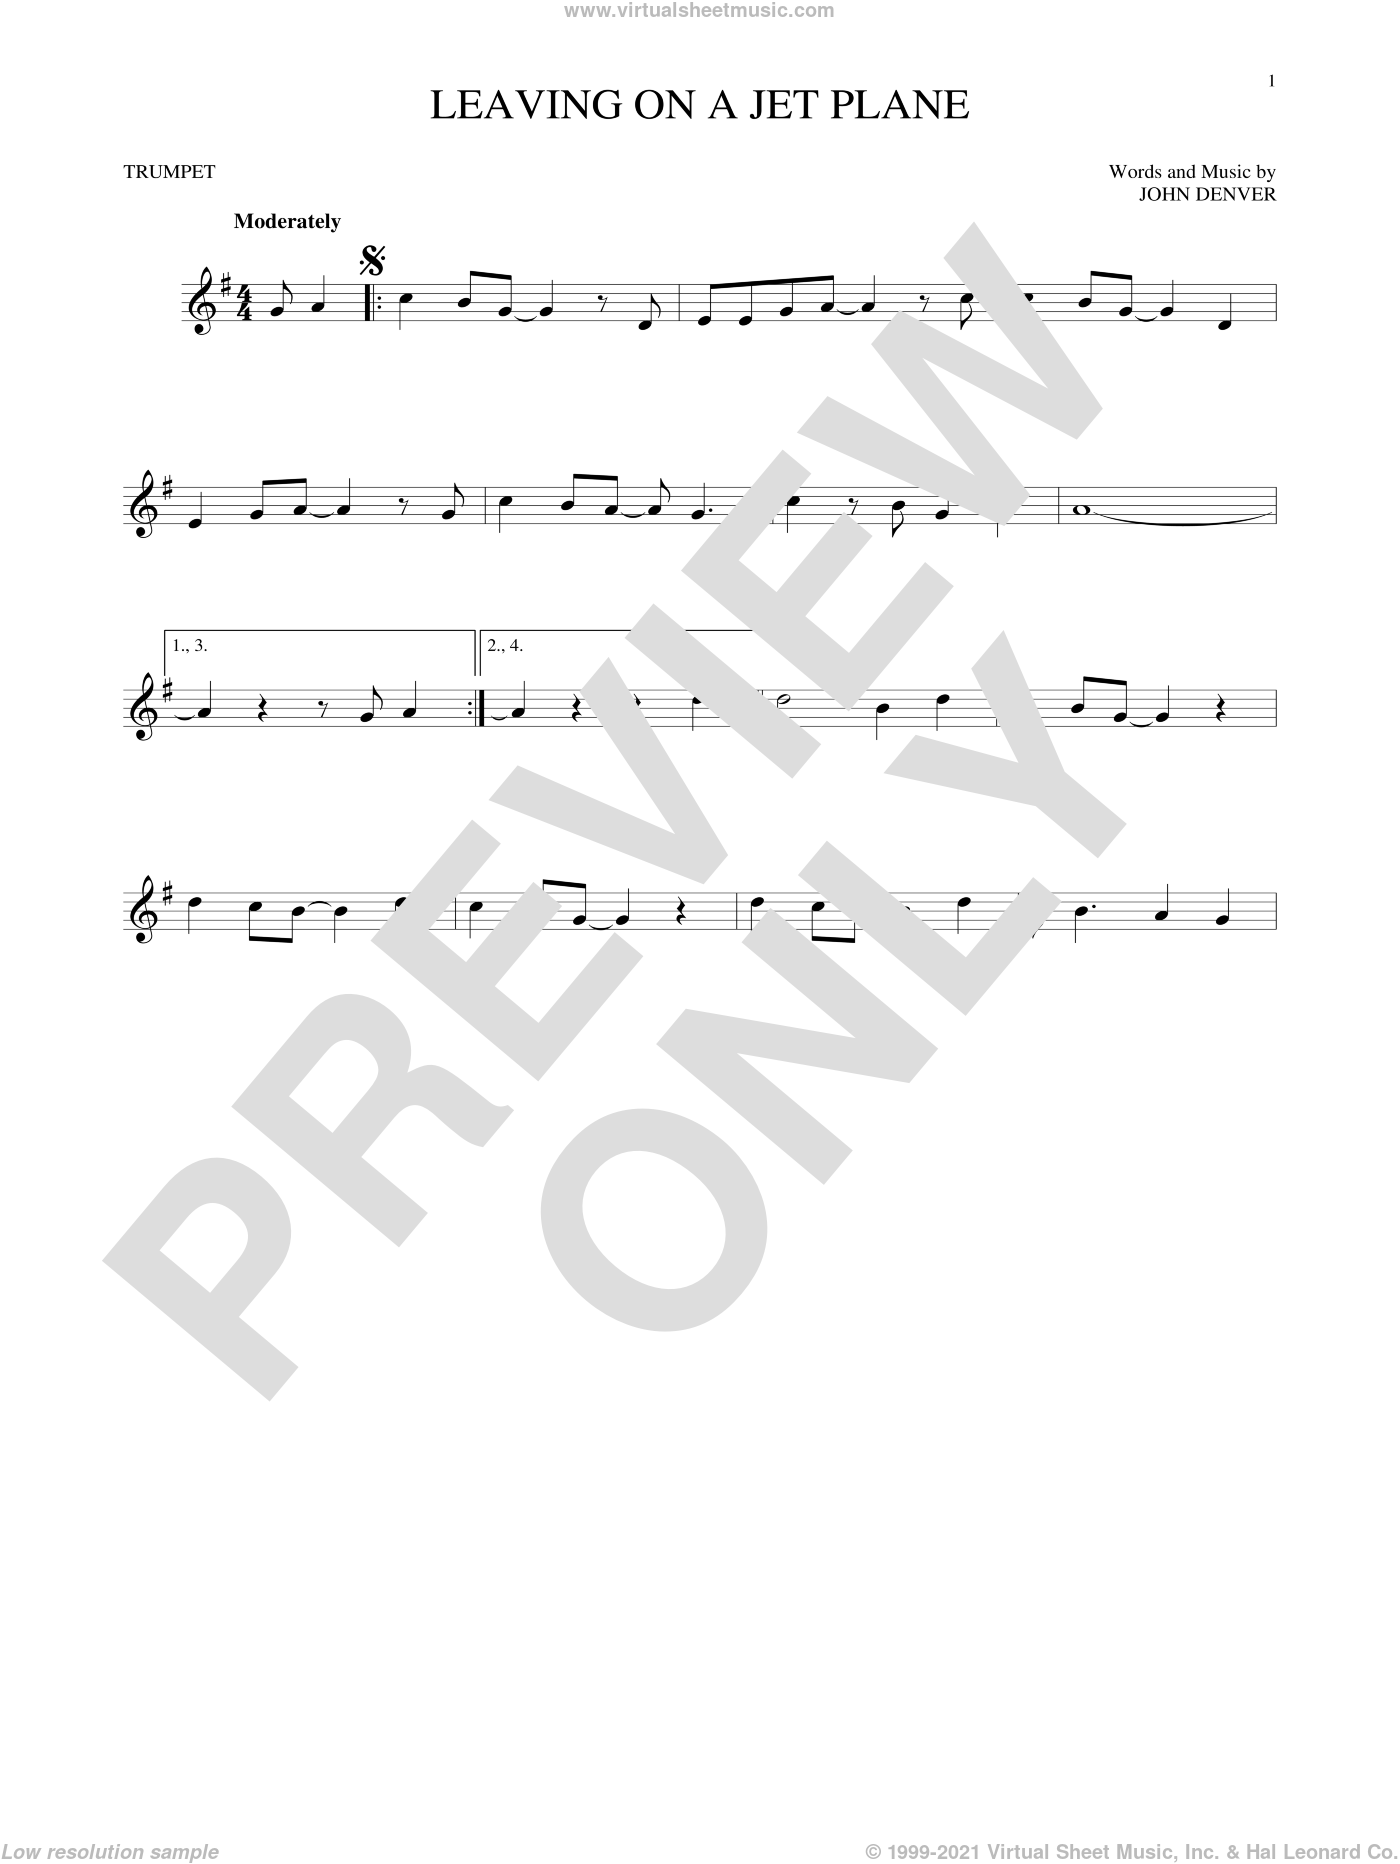 Leaving On A Jet Plane sheet music for trumpet solo by John Denver and Peter, Paul & Mary, intermediate skill level